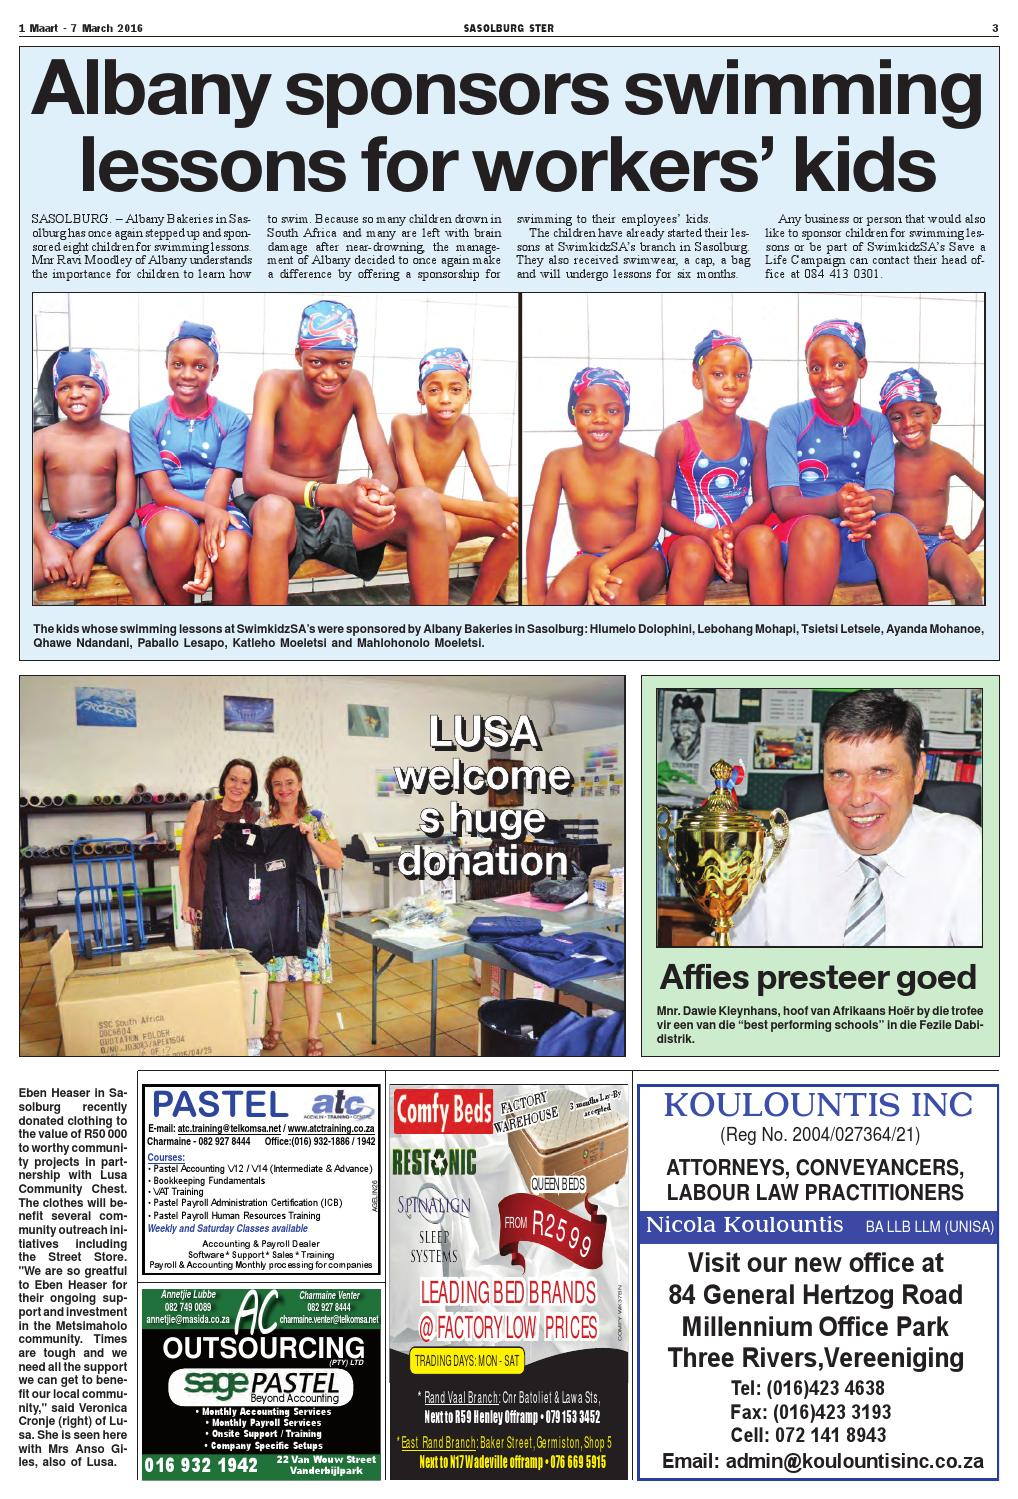 Sasolburg Ster 1 - 7 March 2016 by MooiVaal Media - issuu